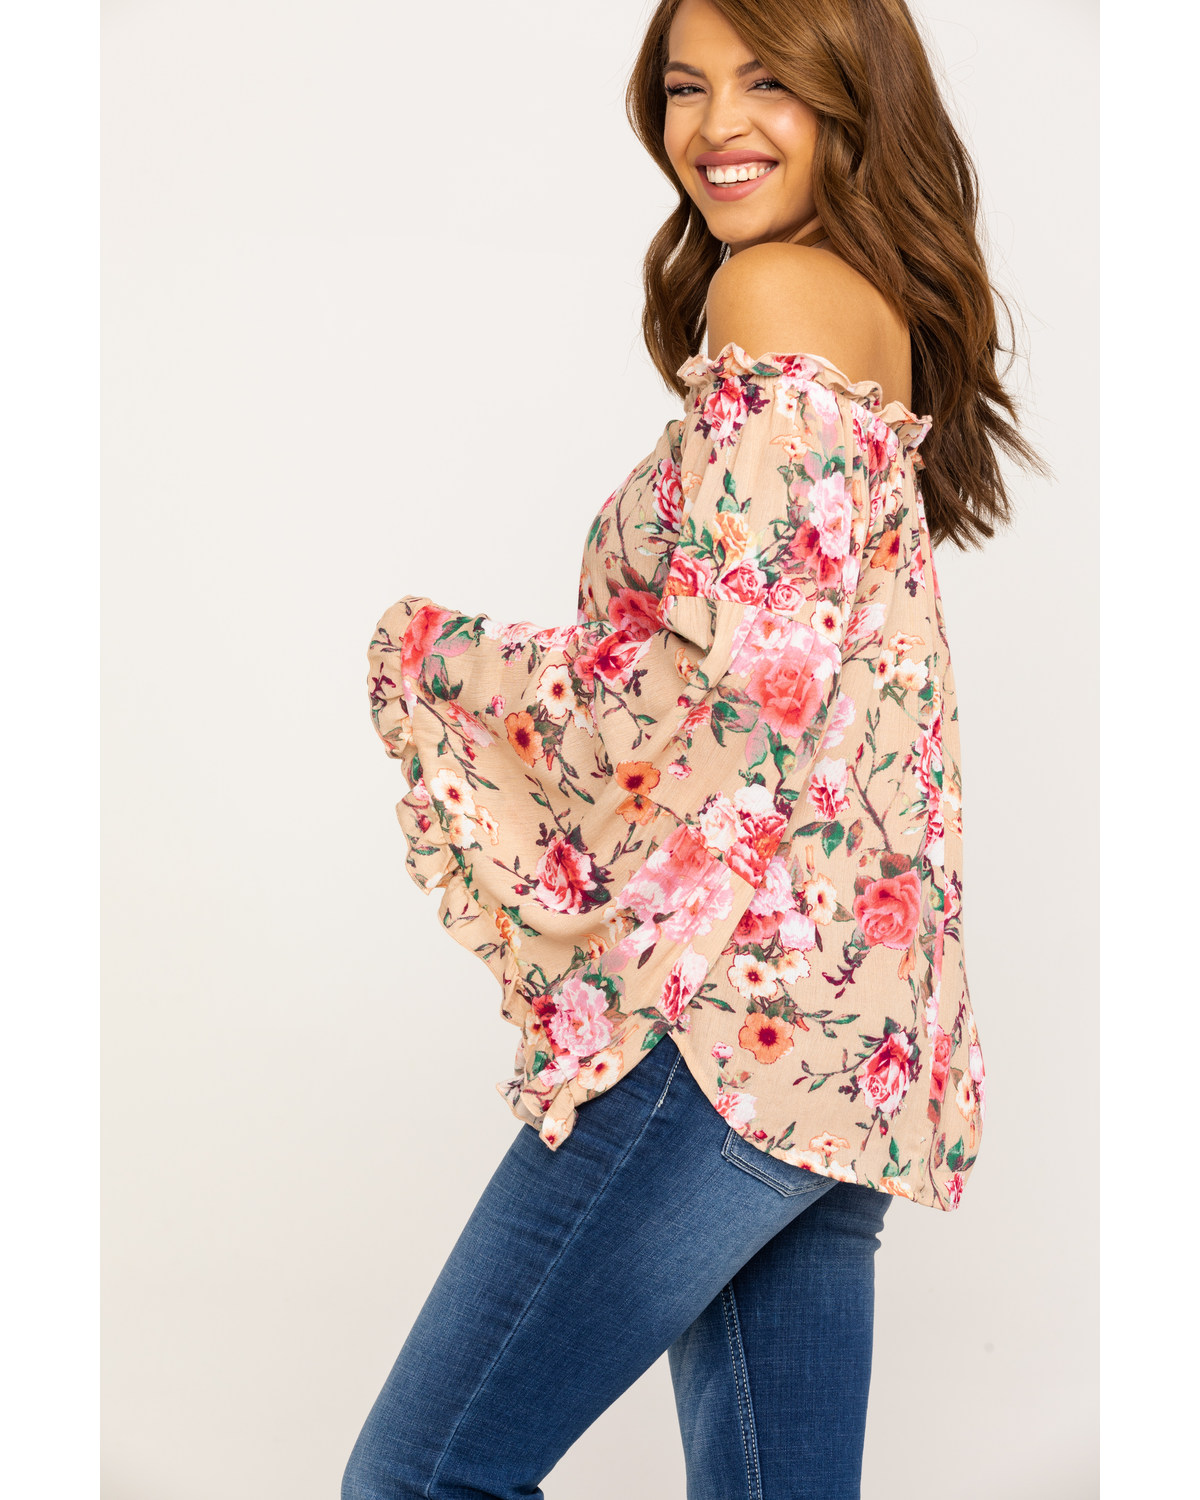 aafabdeea2e2e Red Label by Panhandle Women s Coral Floral Crinkle Off Shoulder Bell  Sleeve Top